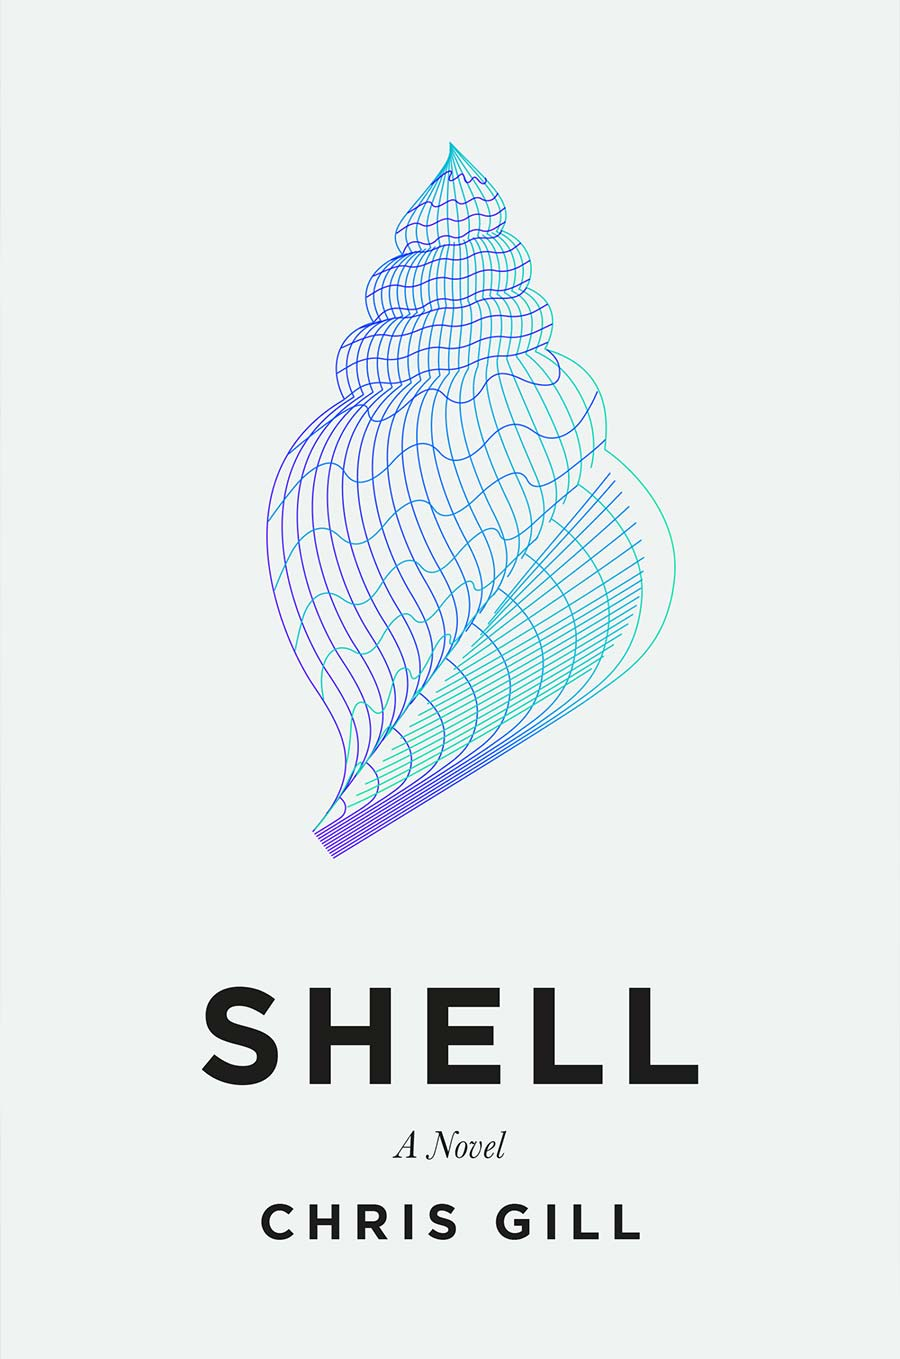 Shell by Chris Gill